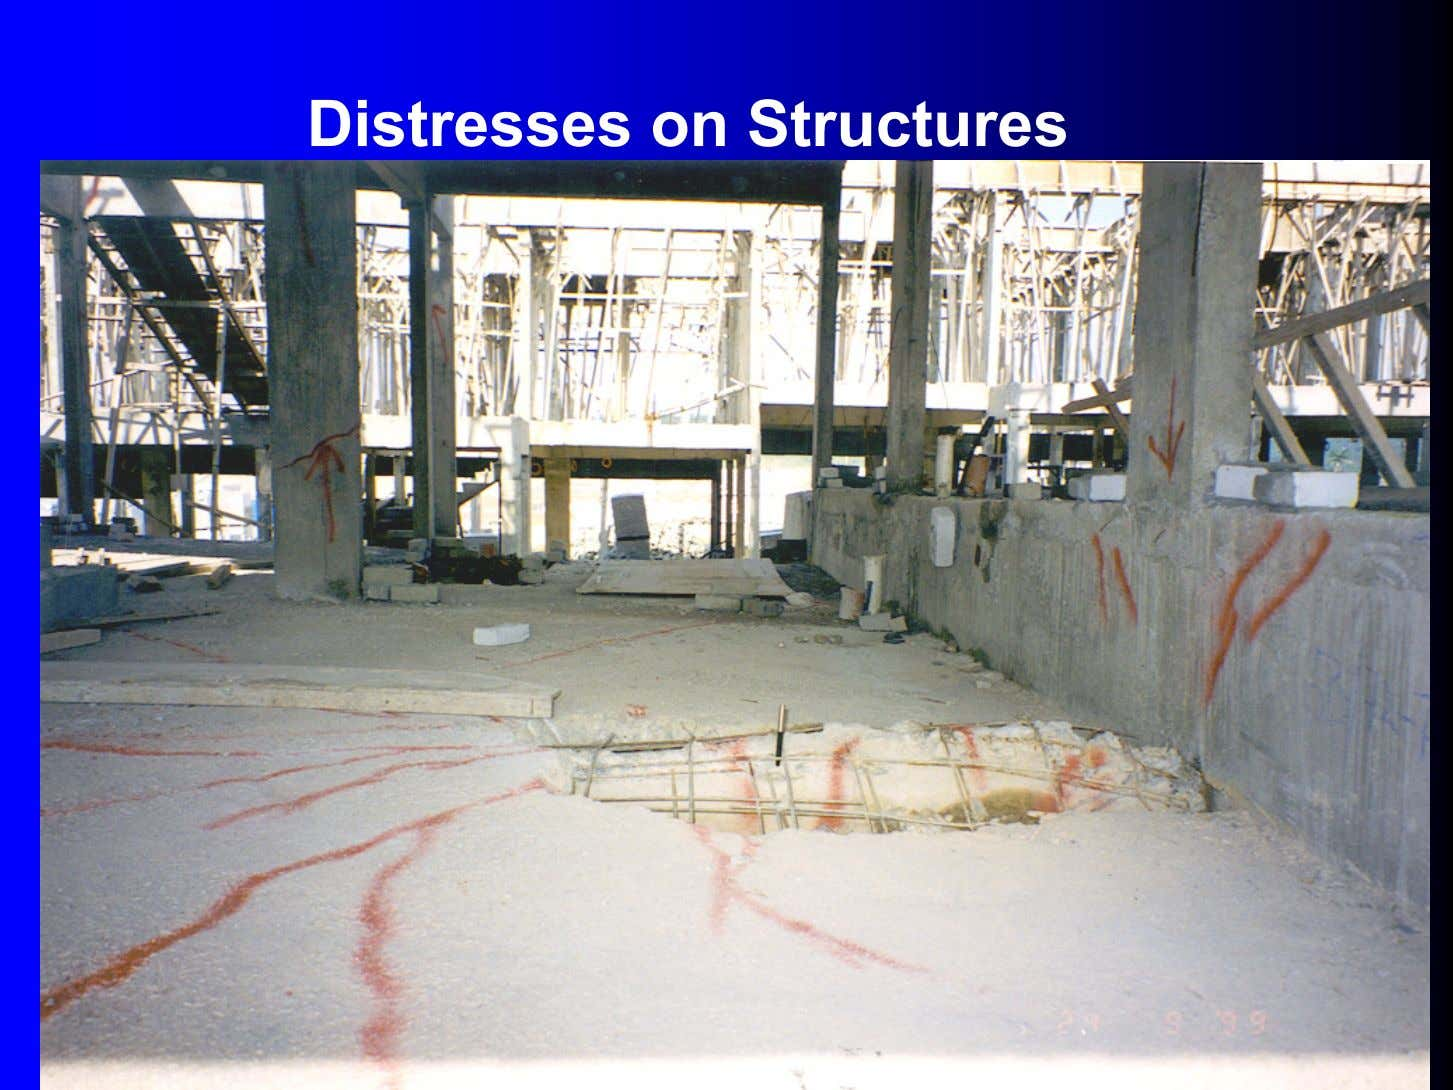 Distresses on Structures